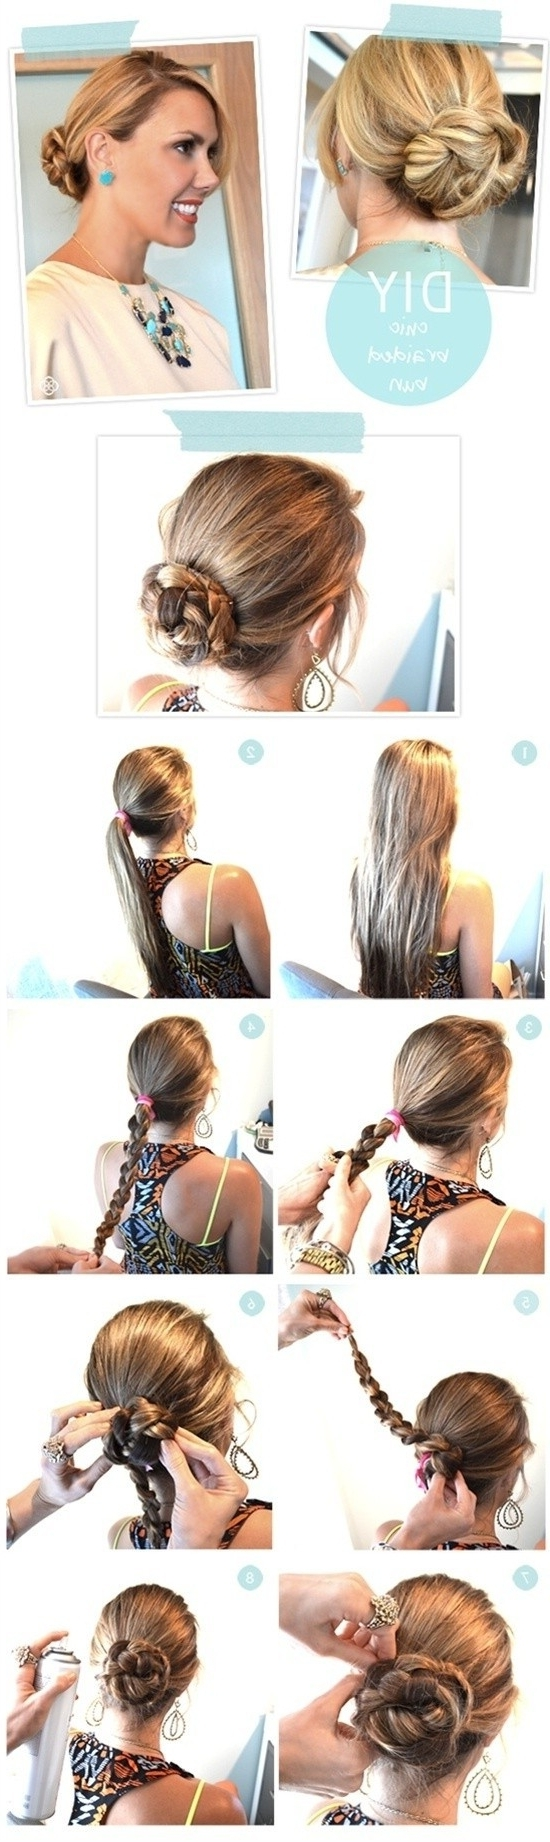 Stepstep Hairstyles For Long Hair: Long Hairstyles Ideas With Diy Updo Hairstyles For Long Hair (View 14 of 15)